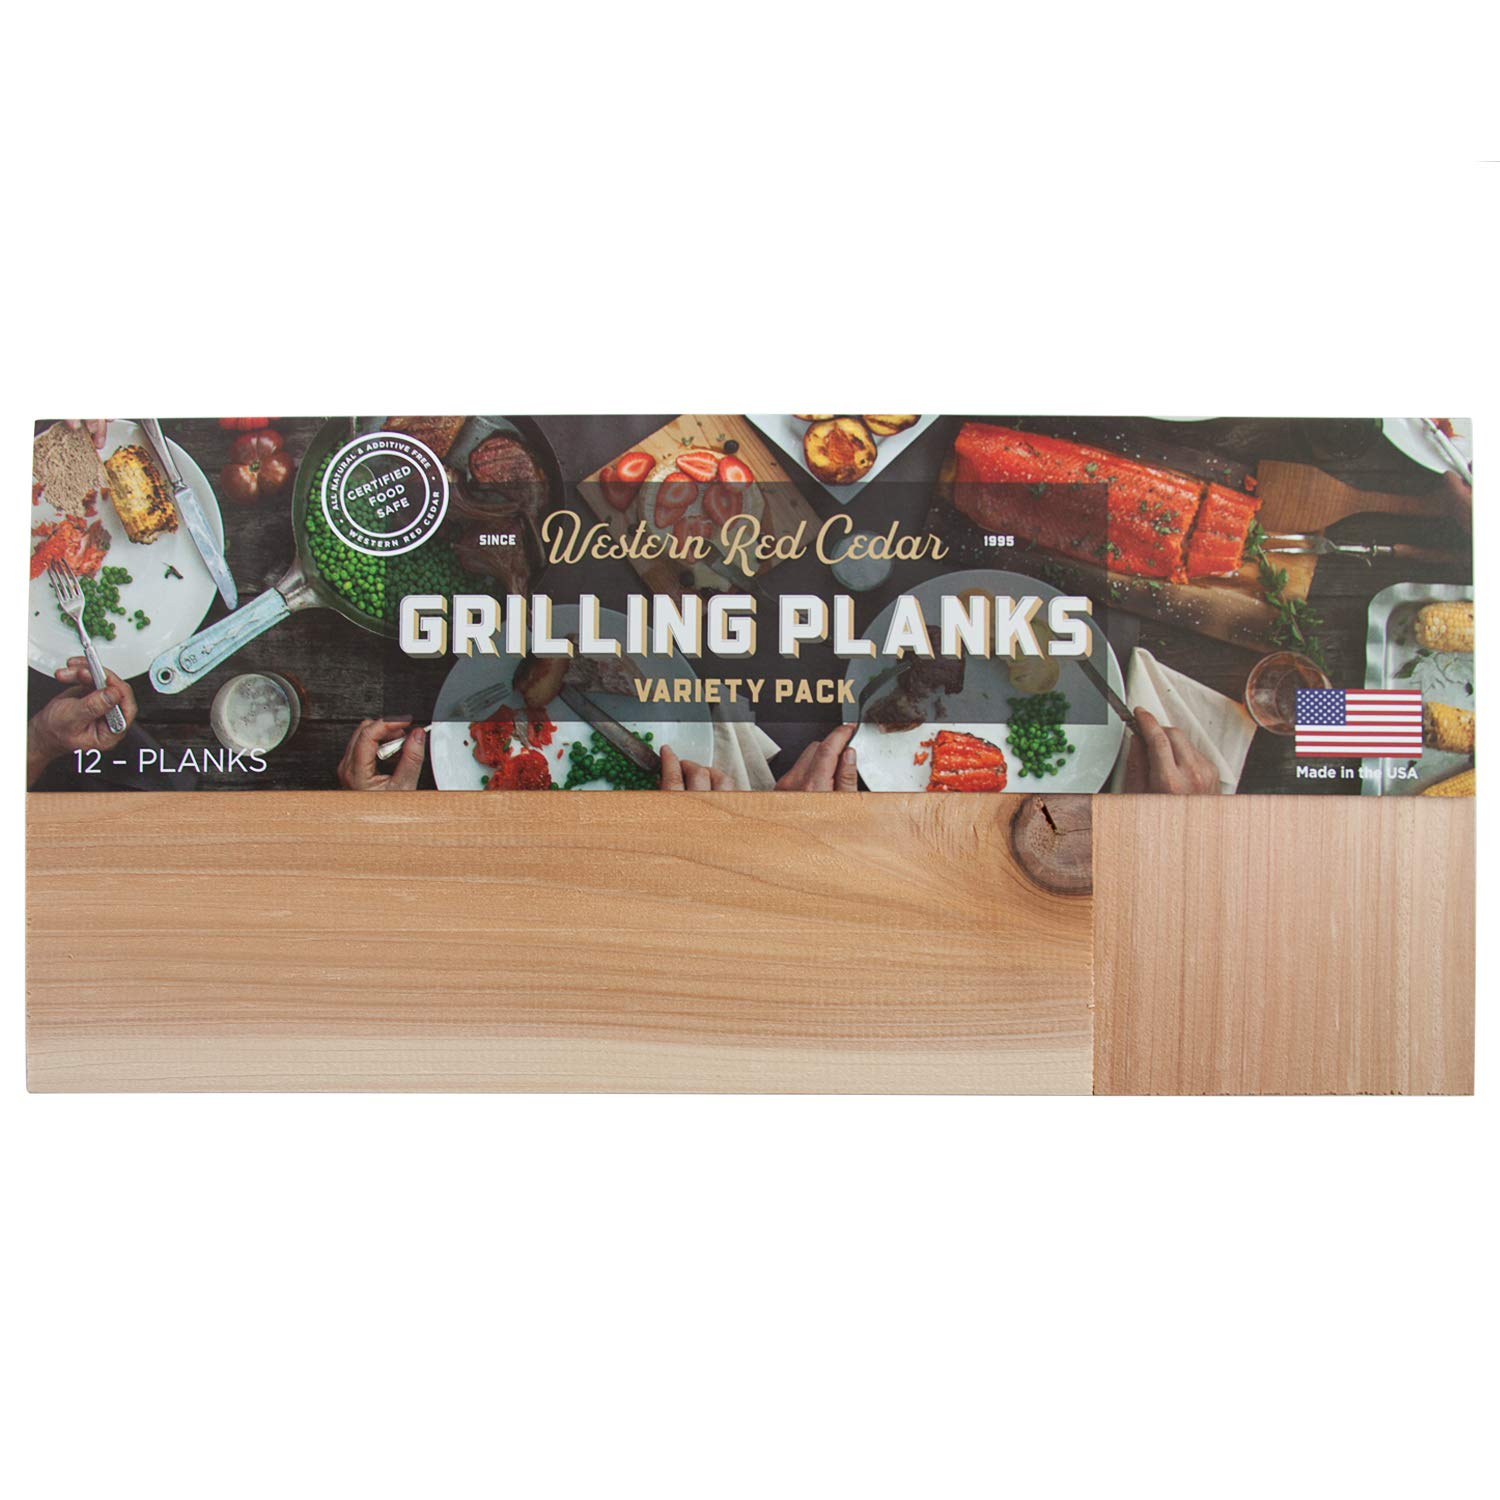 Cedar Grilling Plank Party Pack - 12 Planks in a Variety of 3 Sizes - XL, Large & Small